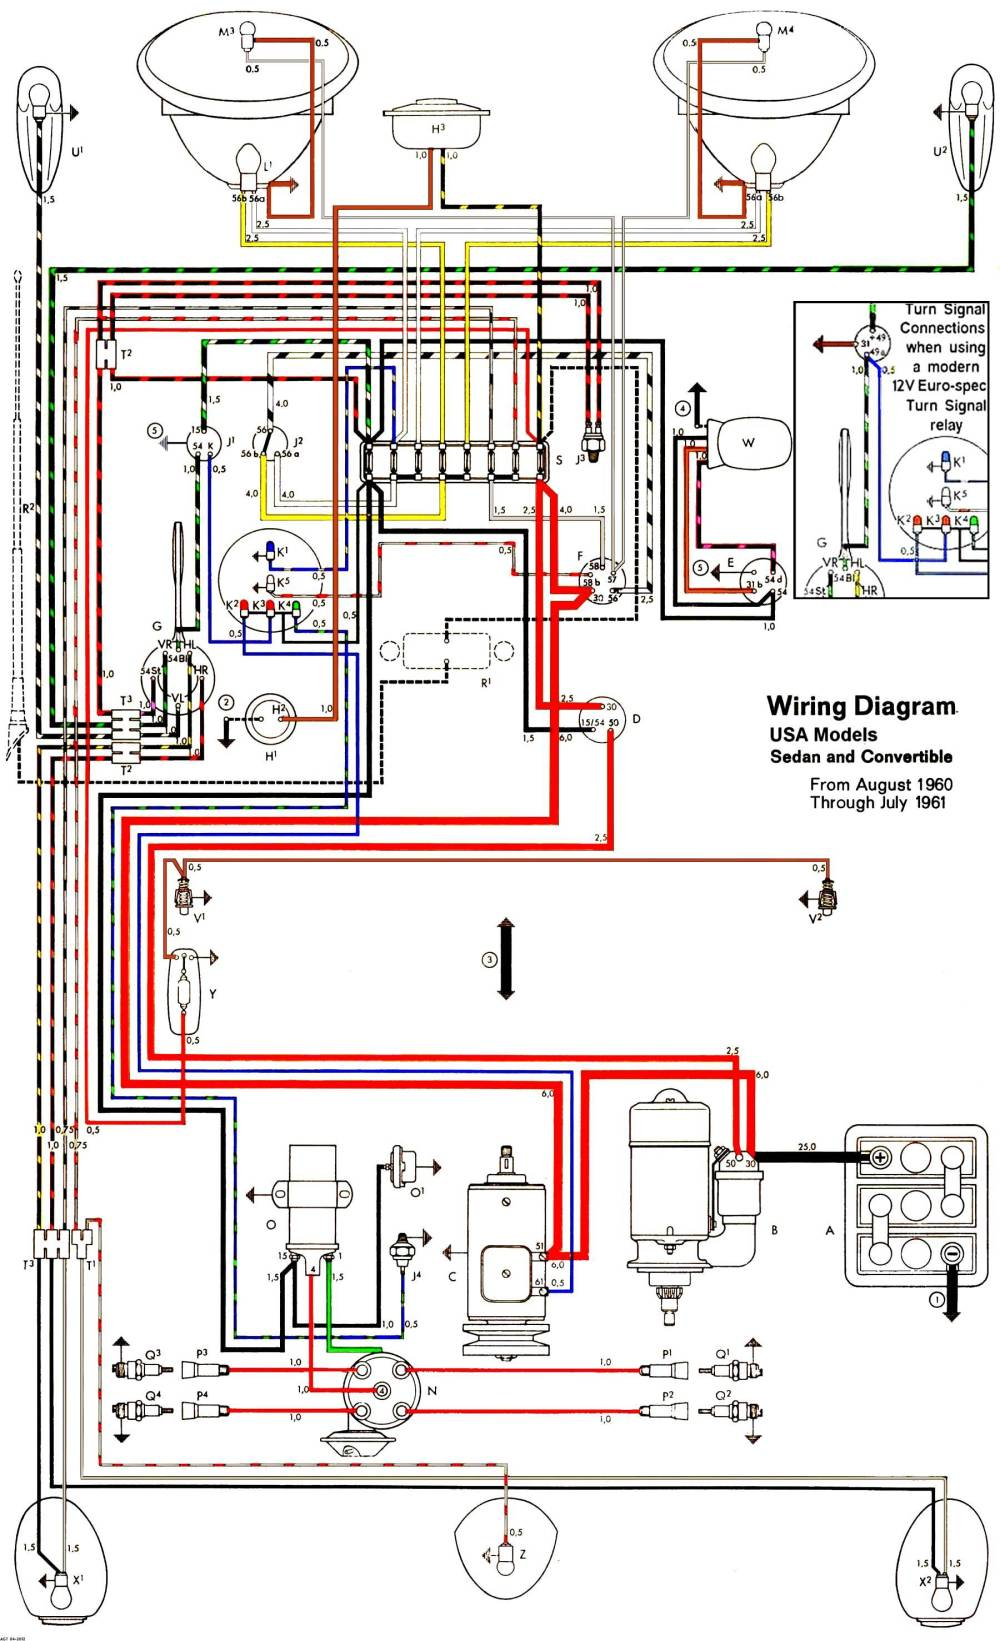 medium resolution of wiring diagram for t1 blog wiring diagram t1 circuit diagram wiring diagram forward wiring diagram for